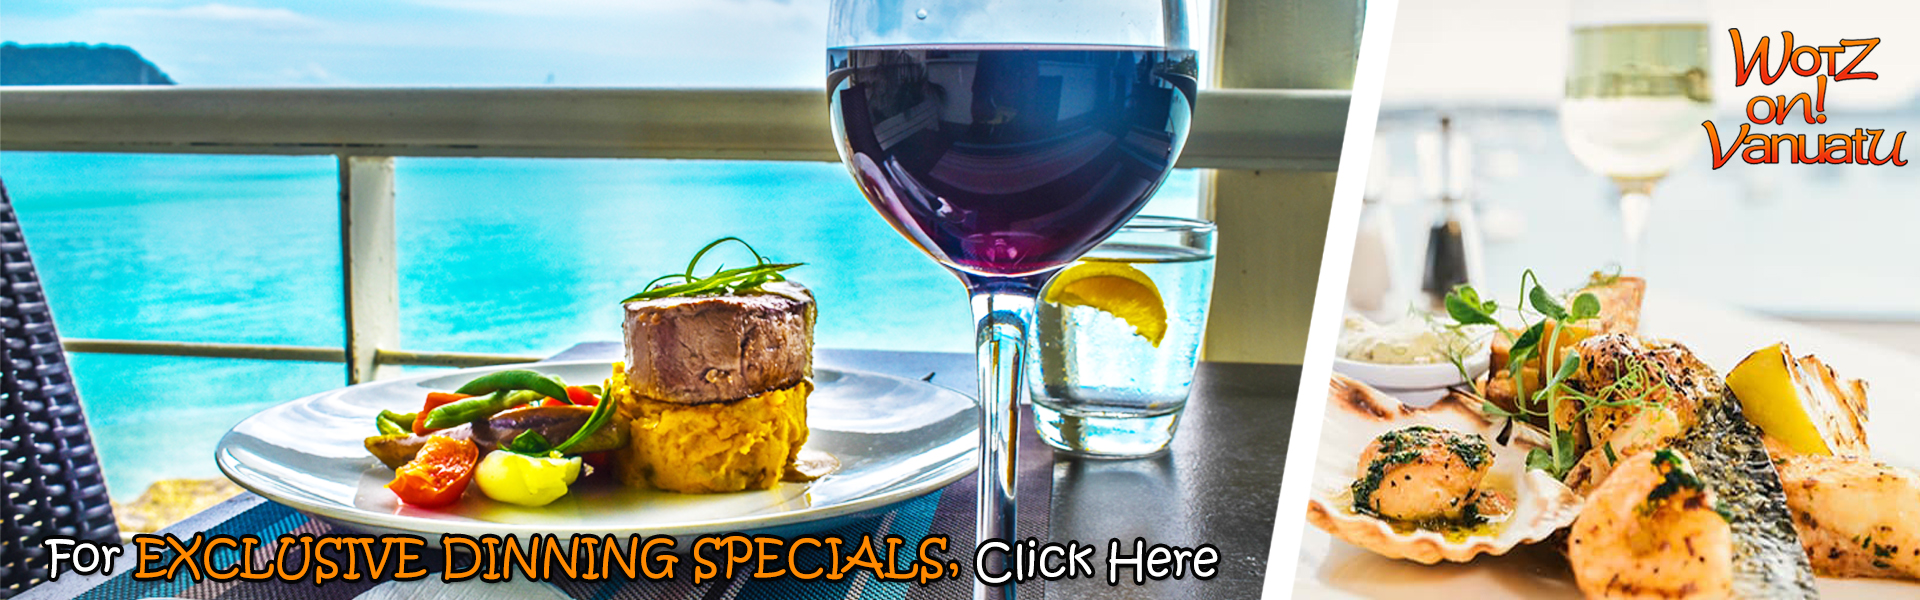 https://wotzonvanuatu.com/wp-content/uploads/2018/02/Wots-on-Vanuatu-Dinning-Specials.jpg